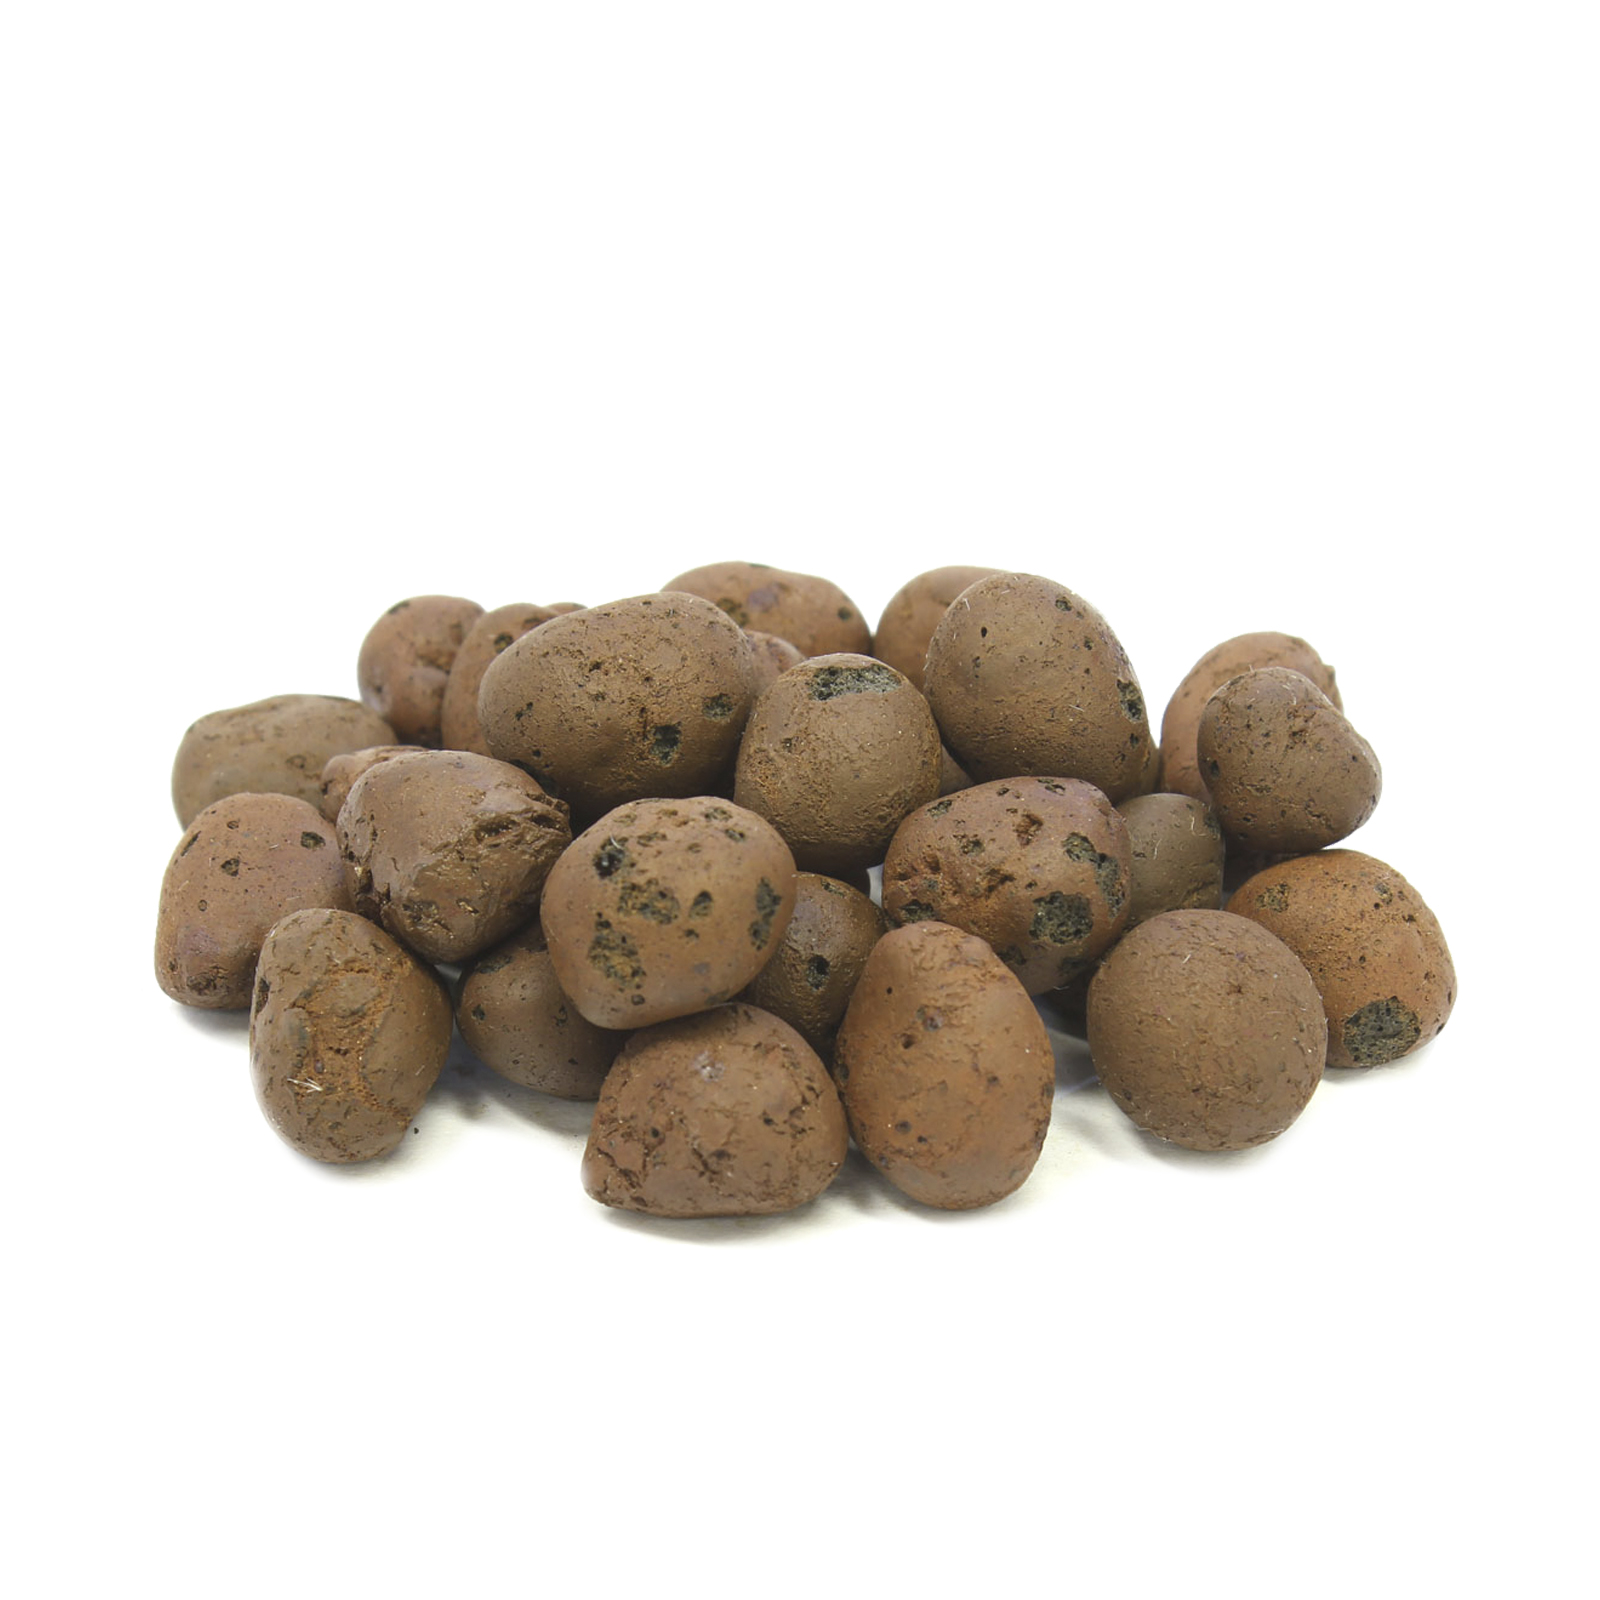 31013 - Clay Pebbles - Fired Clay